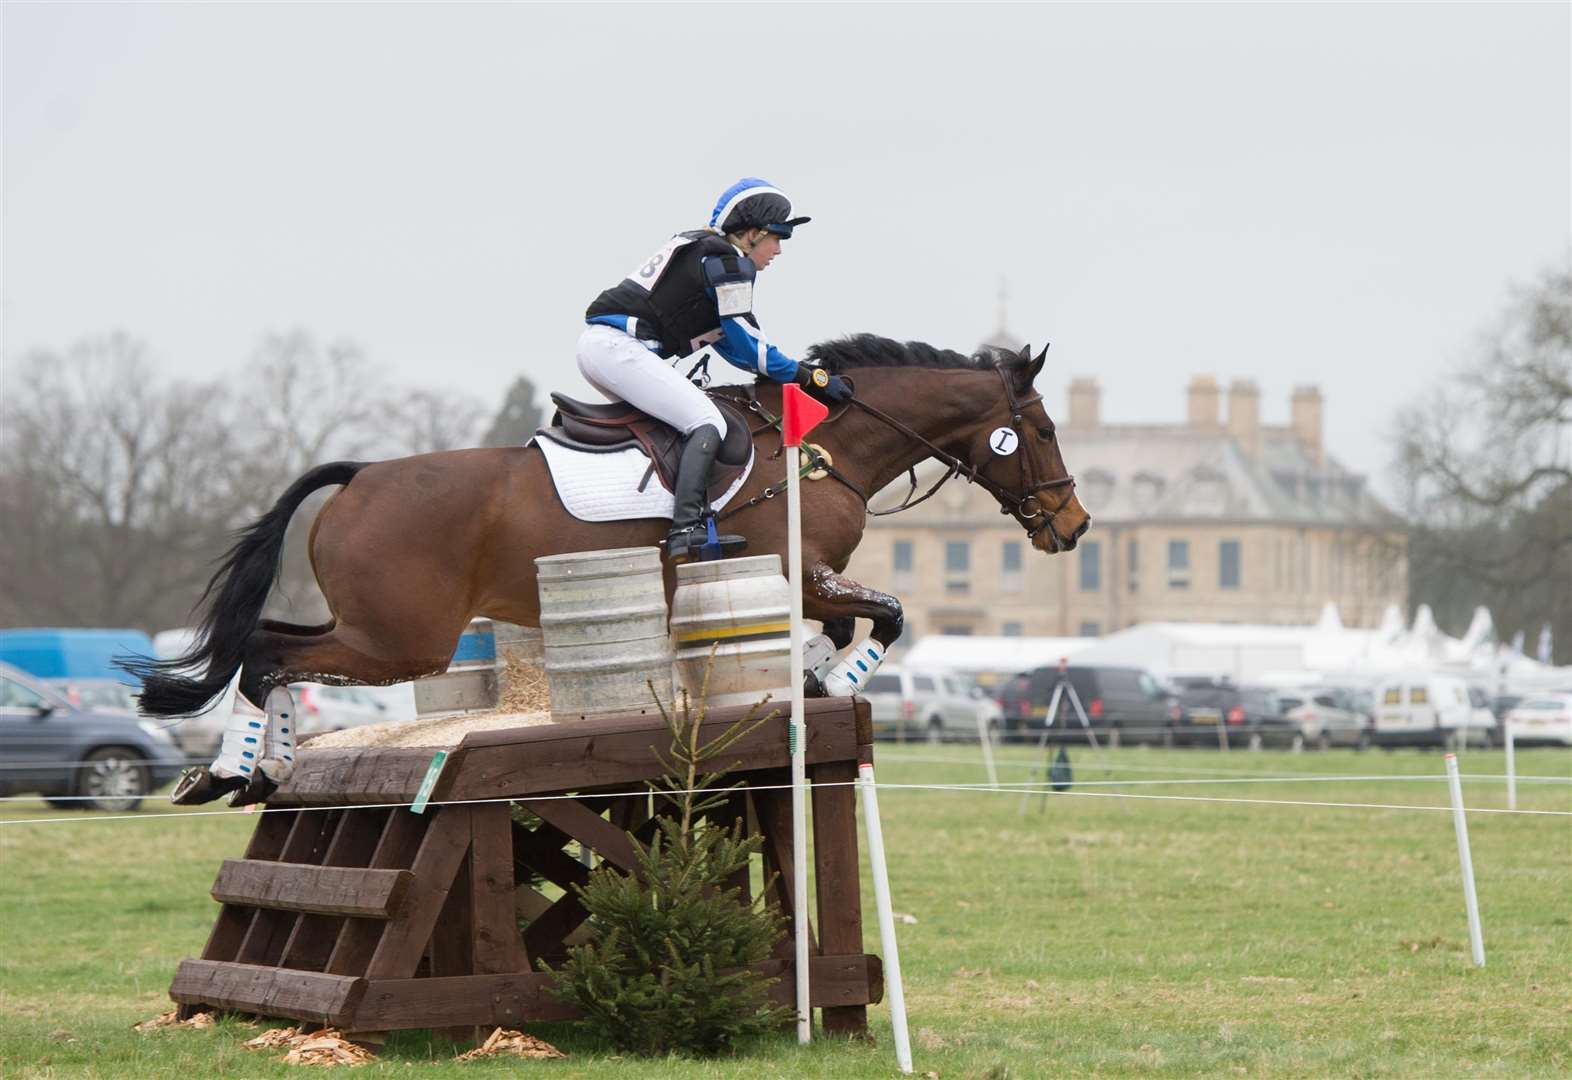 Belton Horse Trials family festival set to deliver more... and there's 25% off admission for Free Press readers